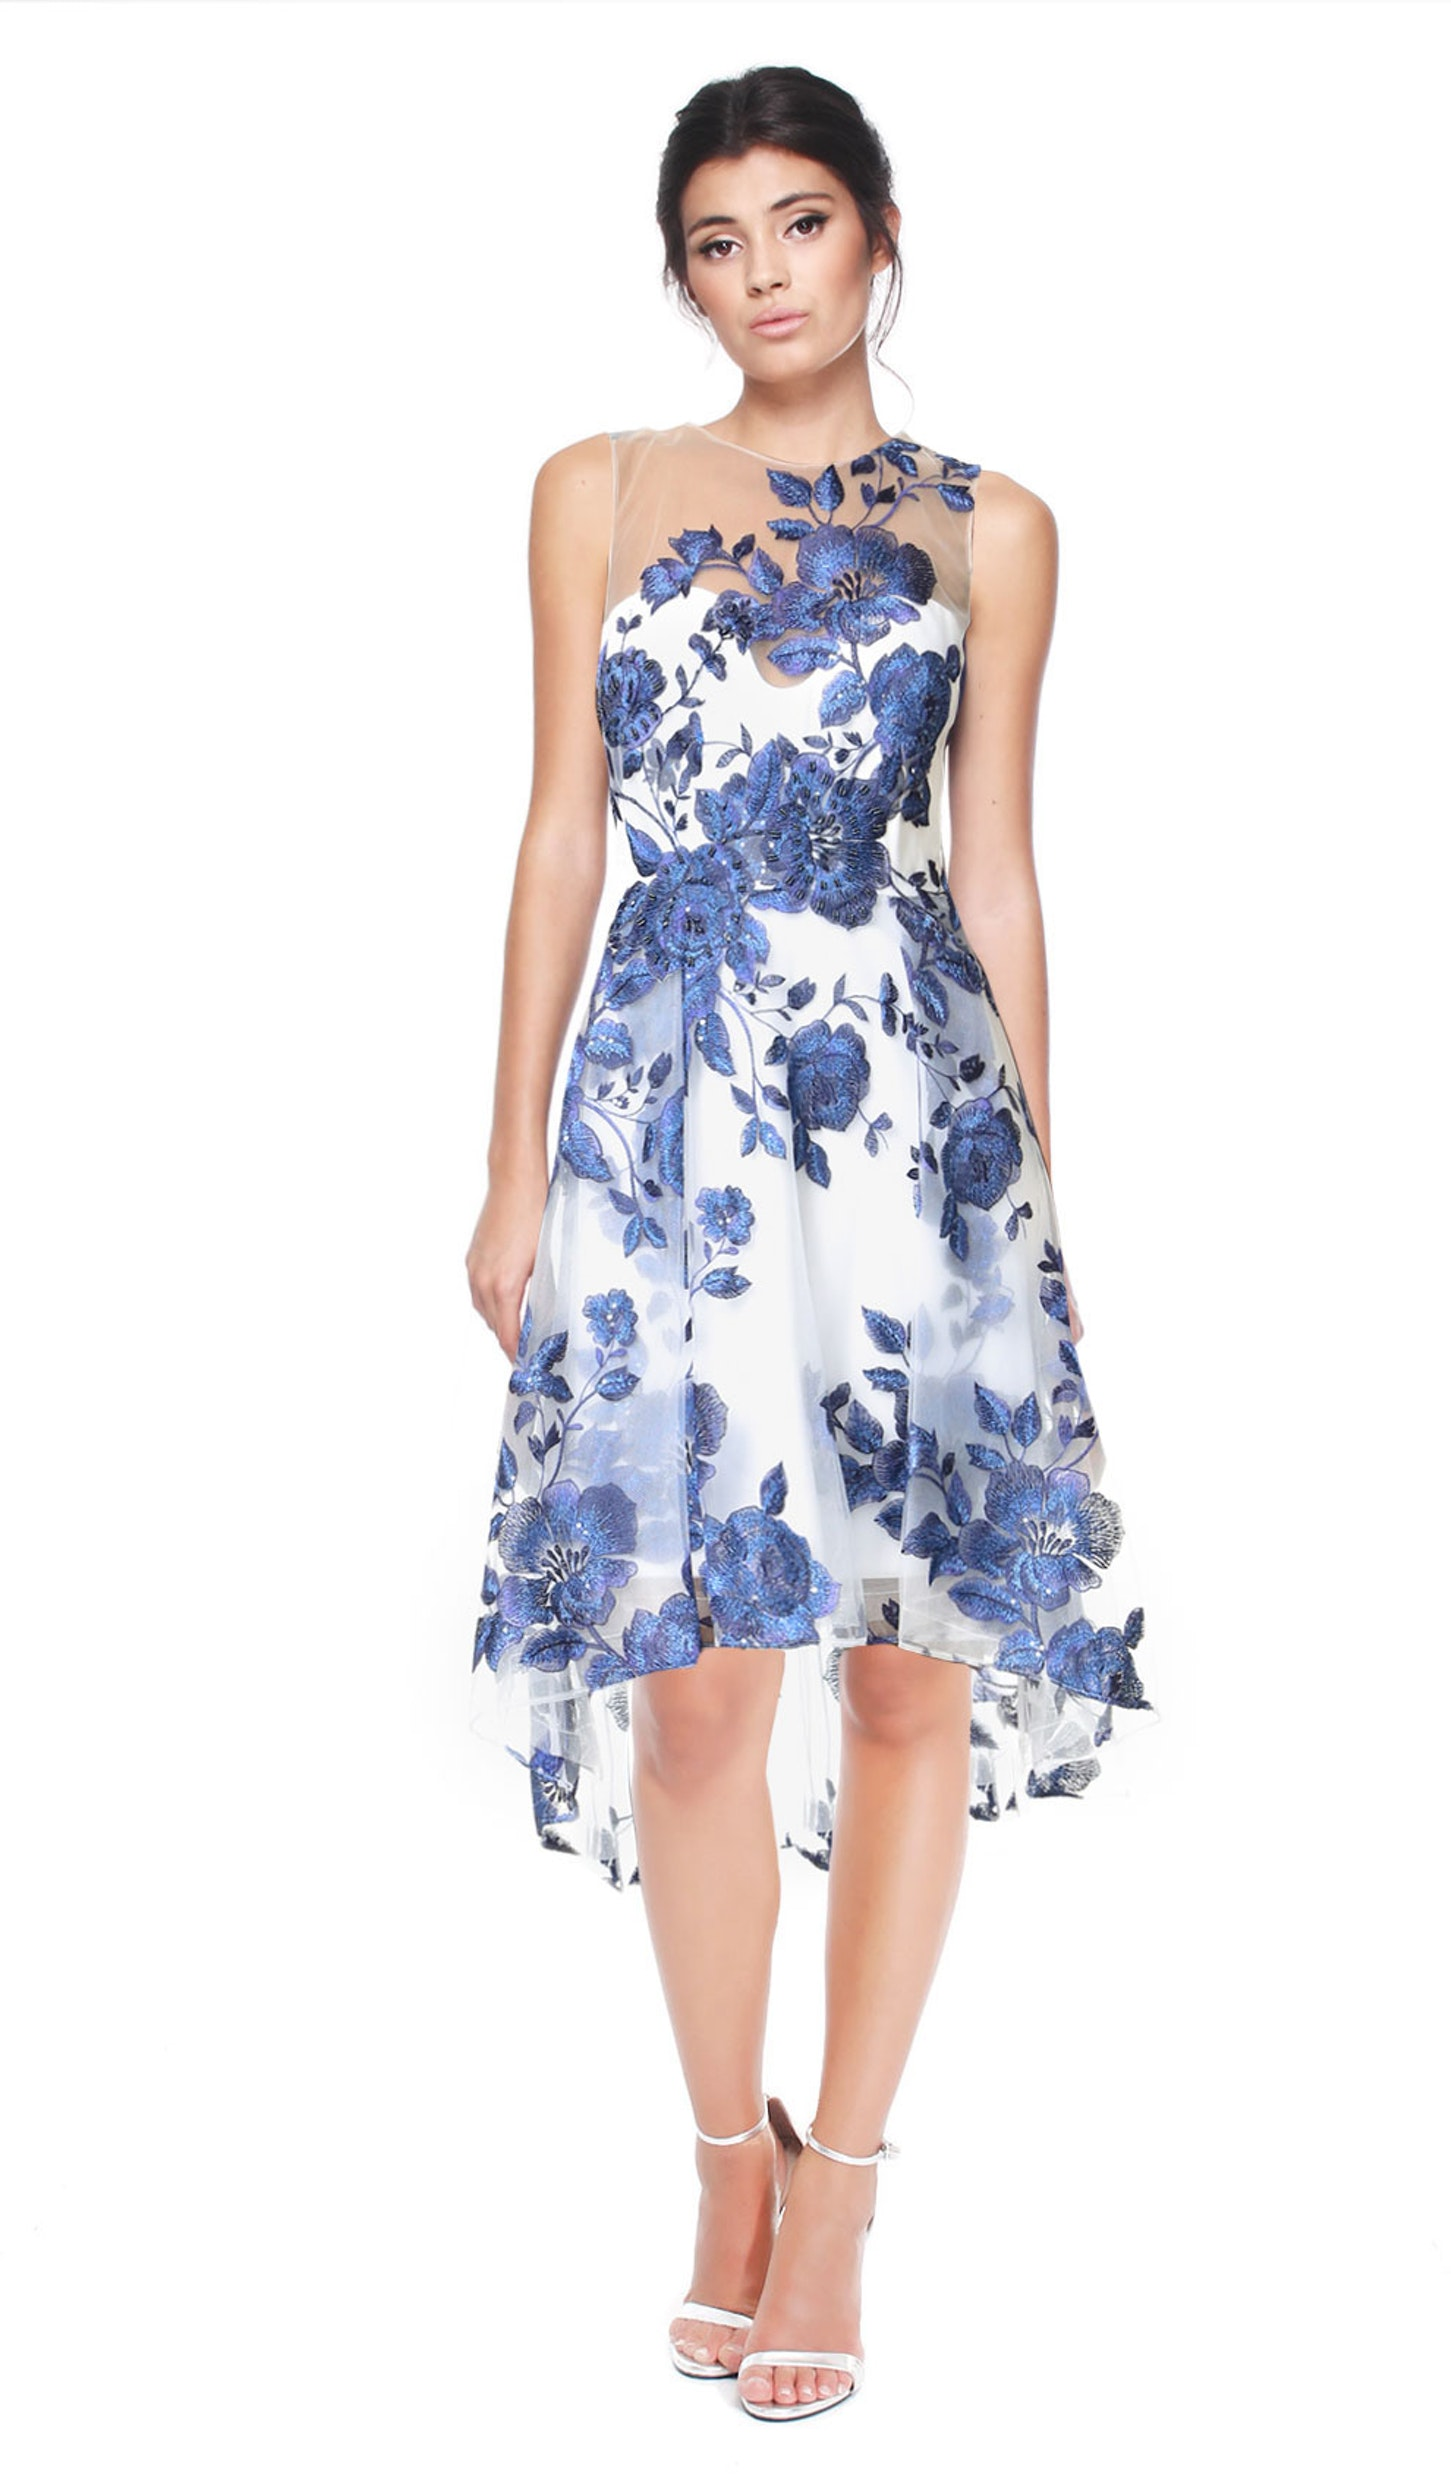 Floral Embroidered Cocktail Dress - MARCHESA NOTTE — Chic by Choice Sale